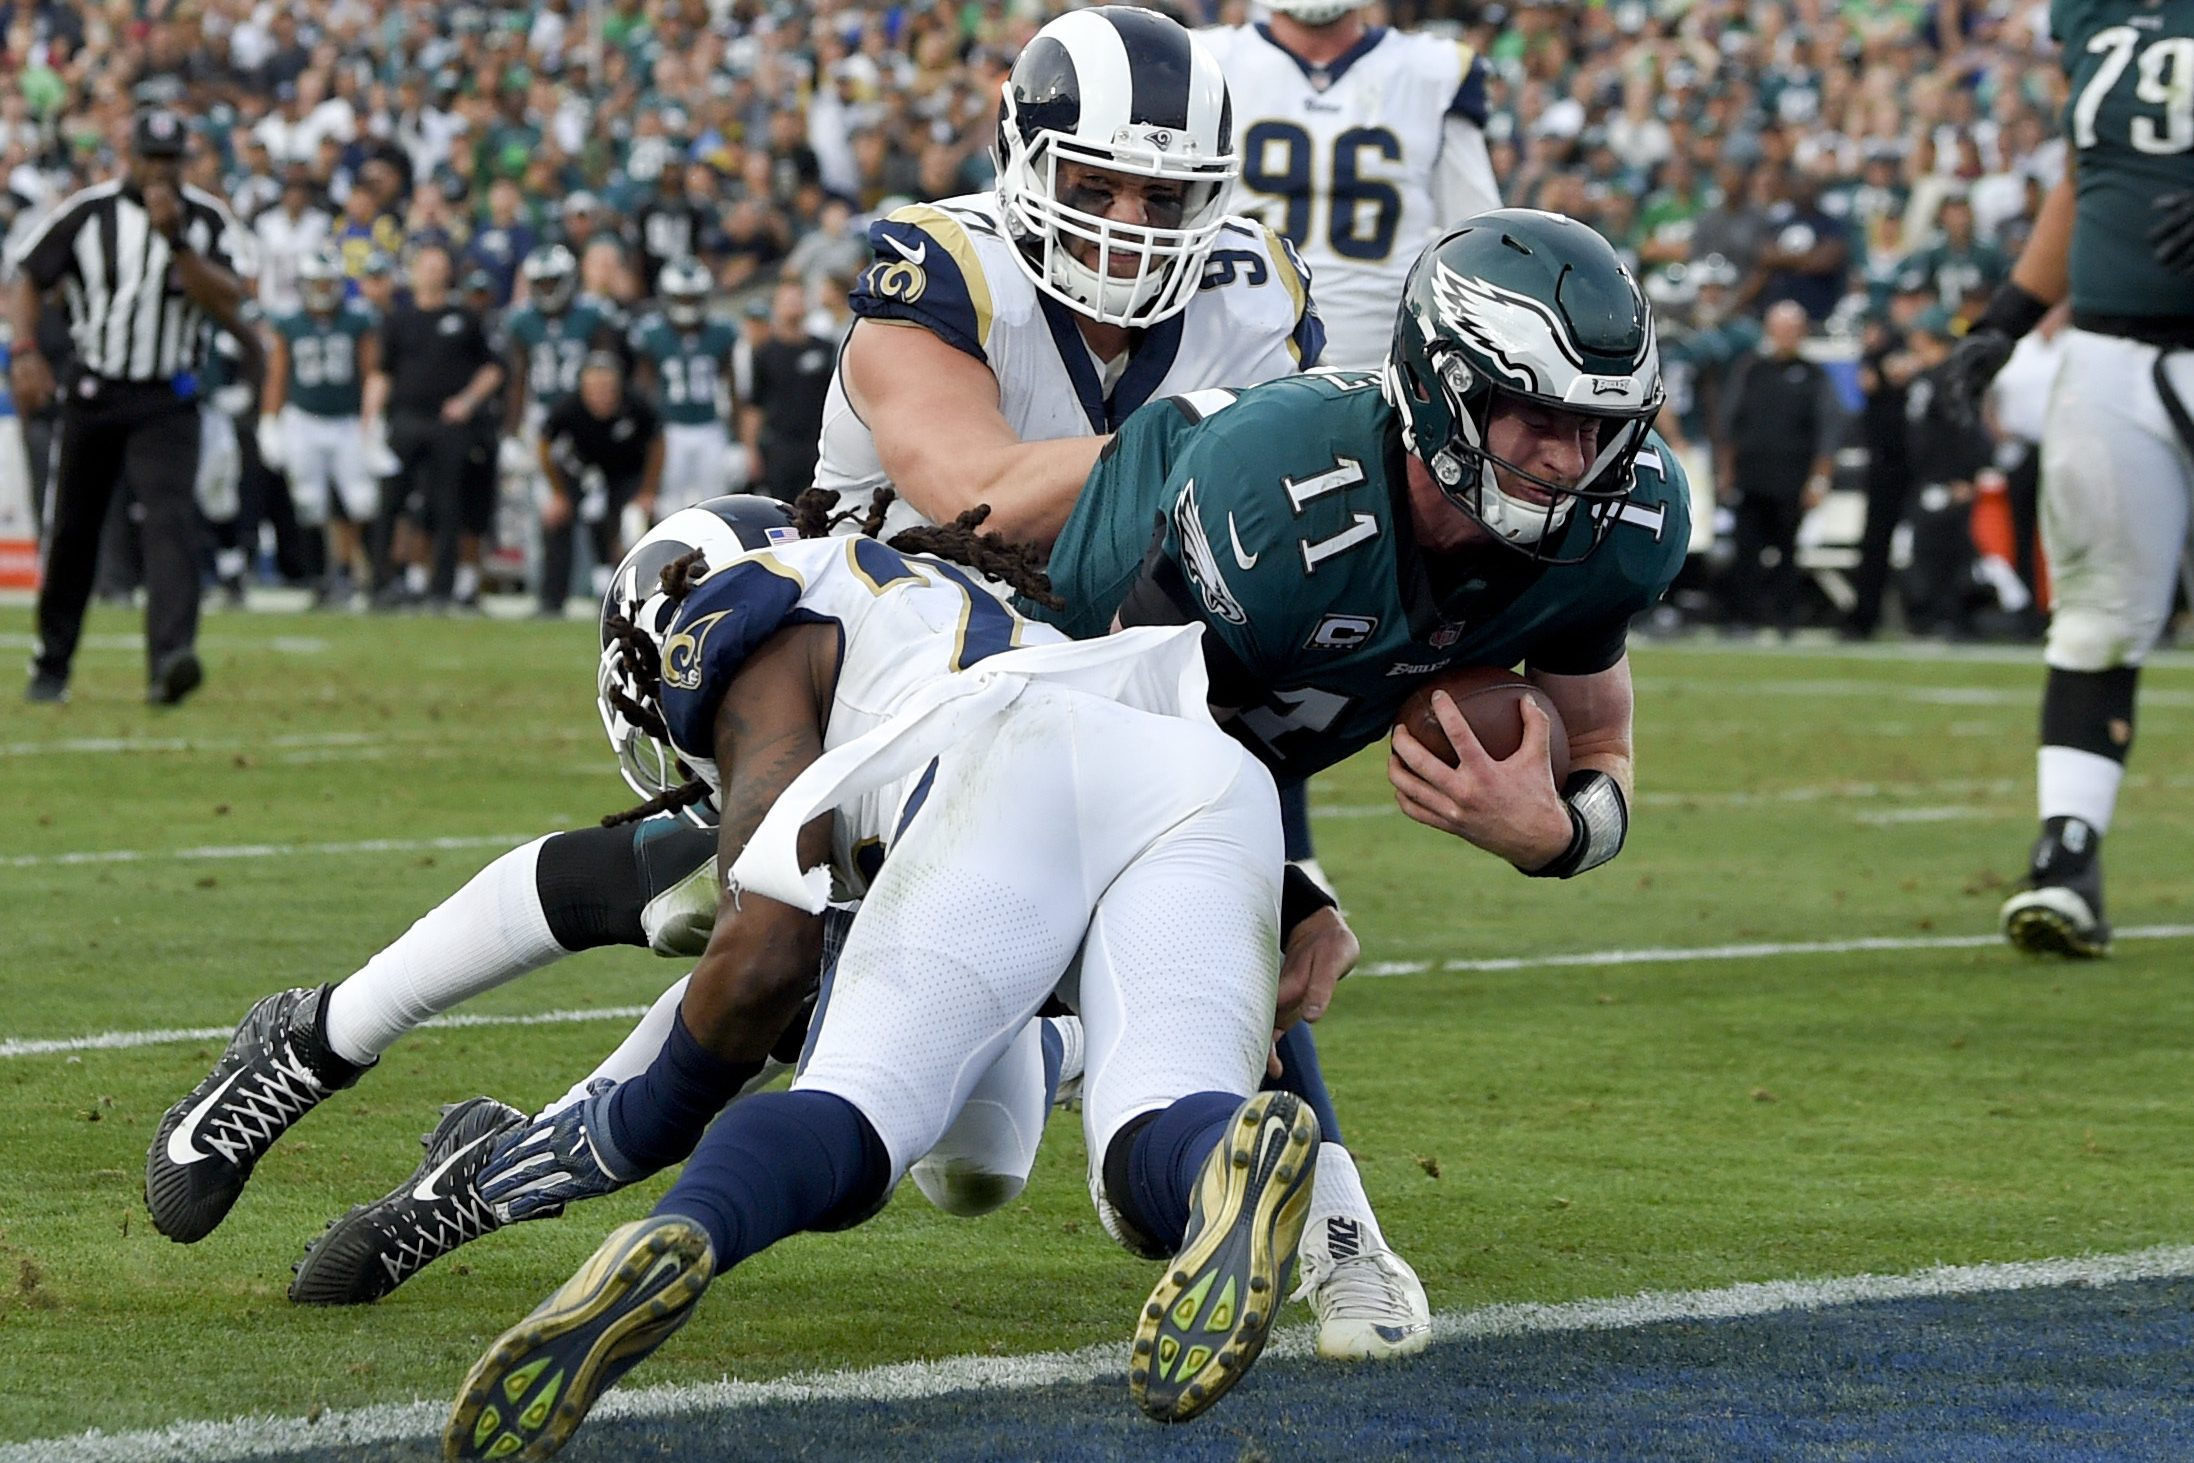 Eagles quarterback Carson Wentz dives for the goal line against the Rams last December. Wentz injured his knee on the play.